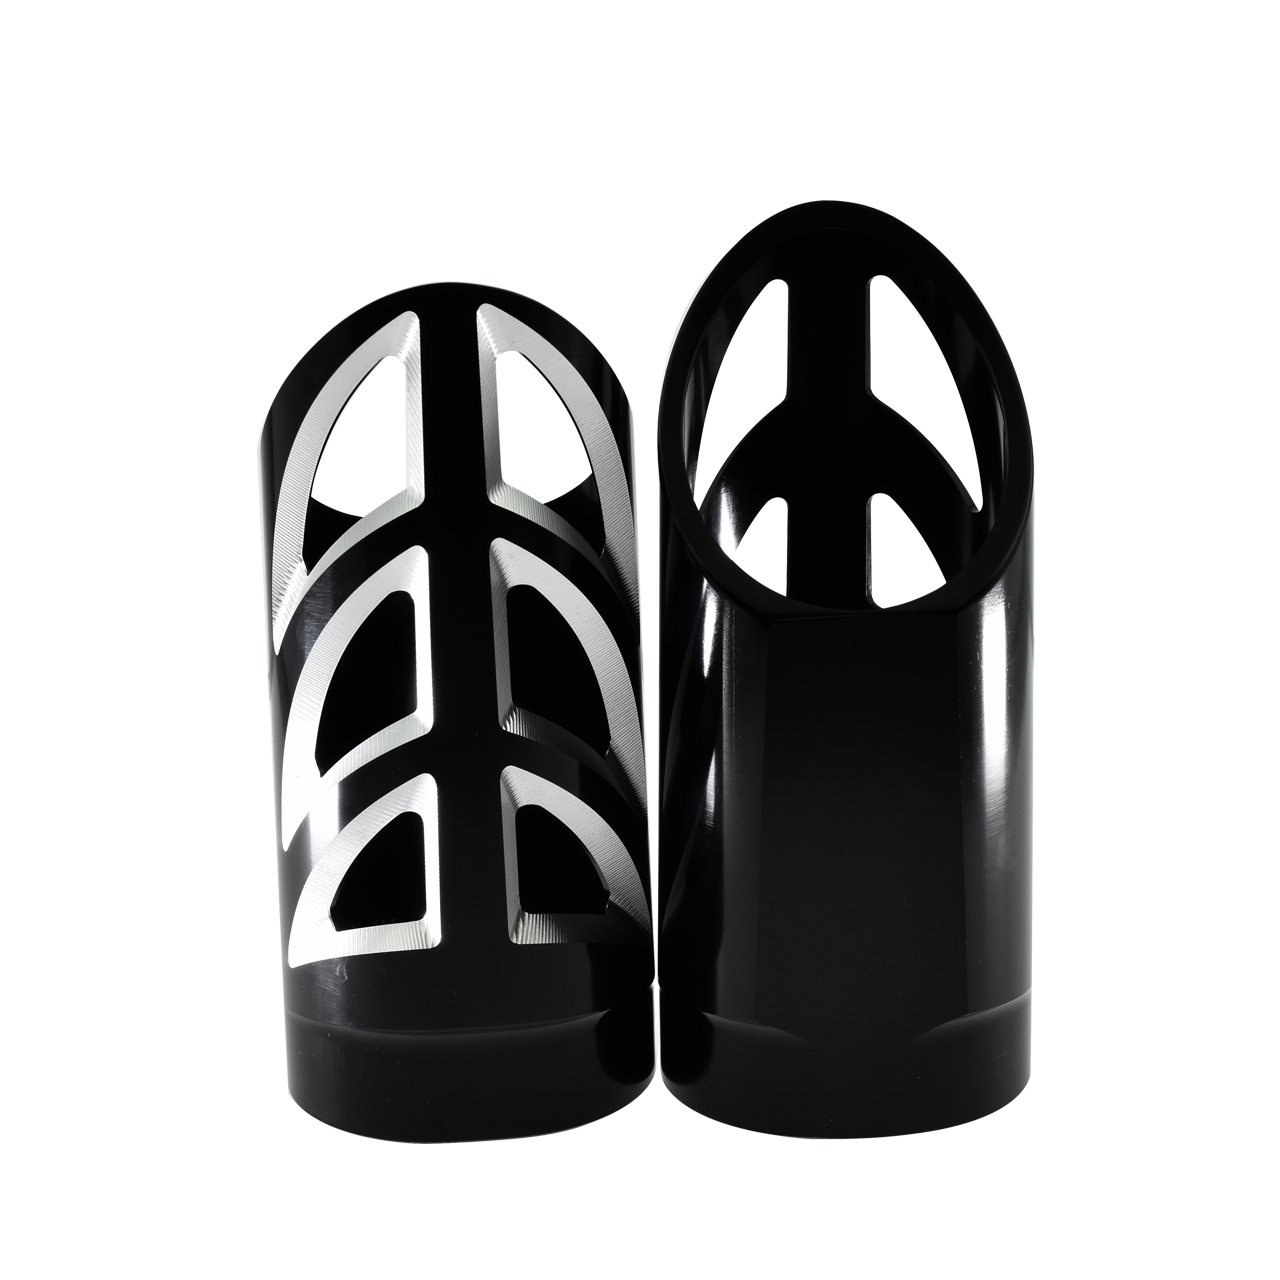 YHMTIVTU Motorcycle Fork Slider Covers CNC Upper Boot Shock Absorbers for Harley 1997-2017 Touring All Models